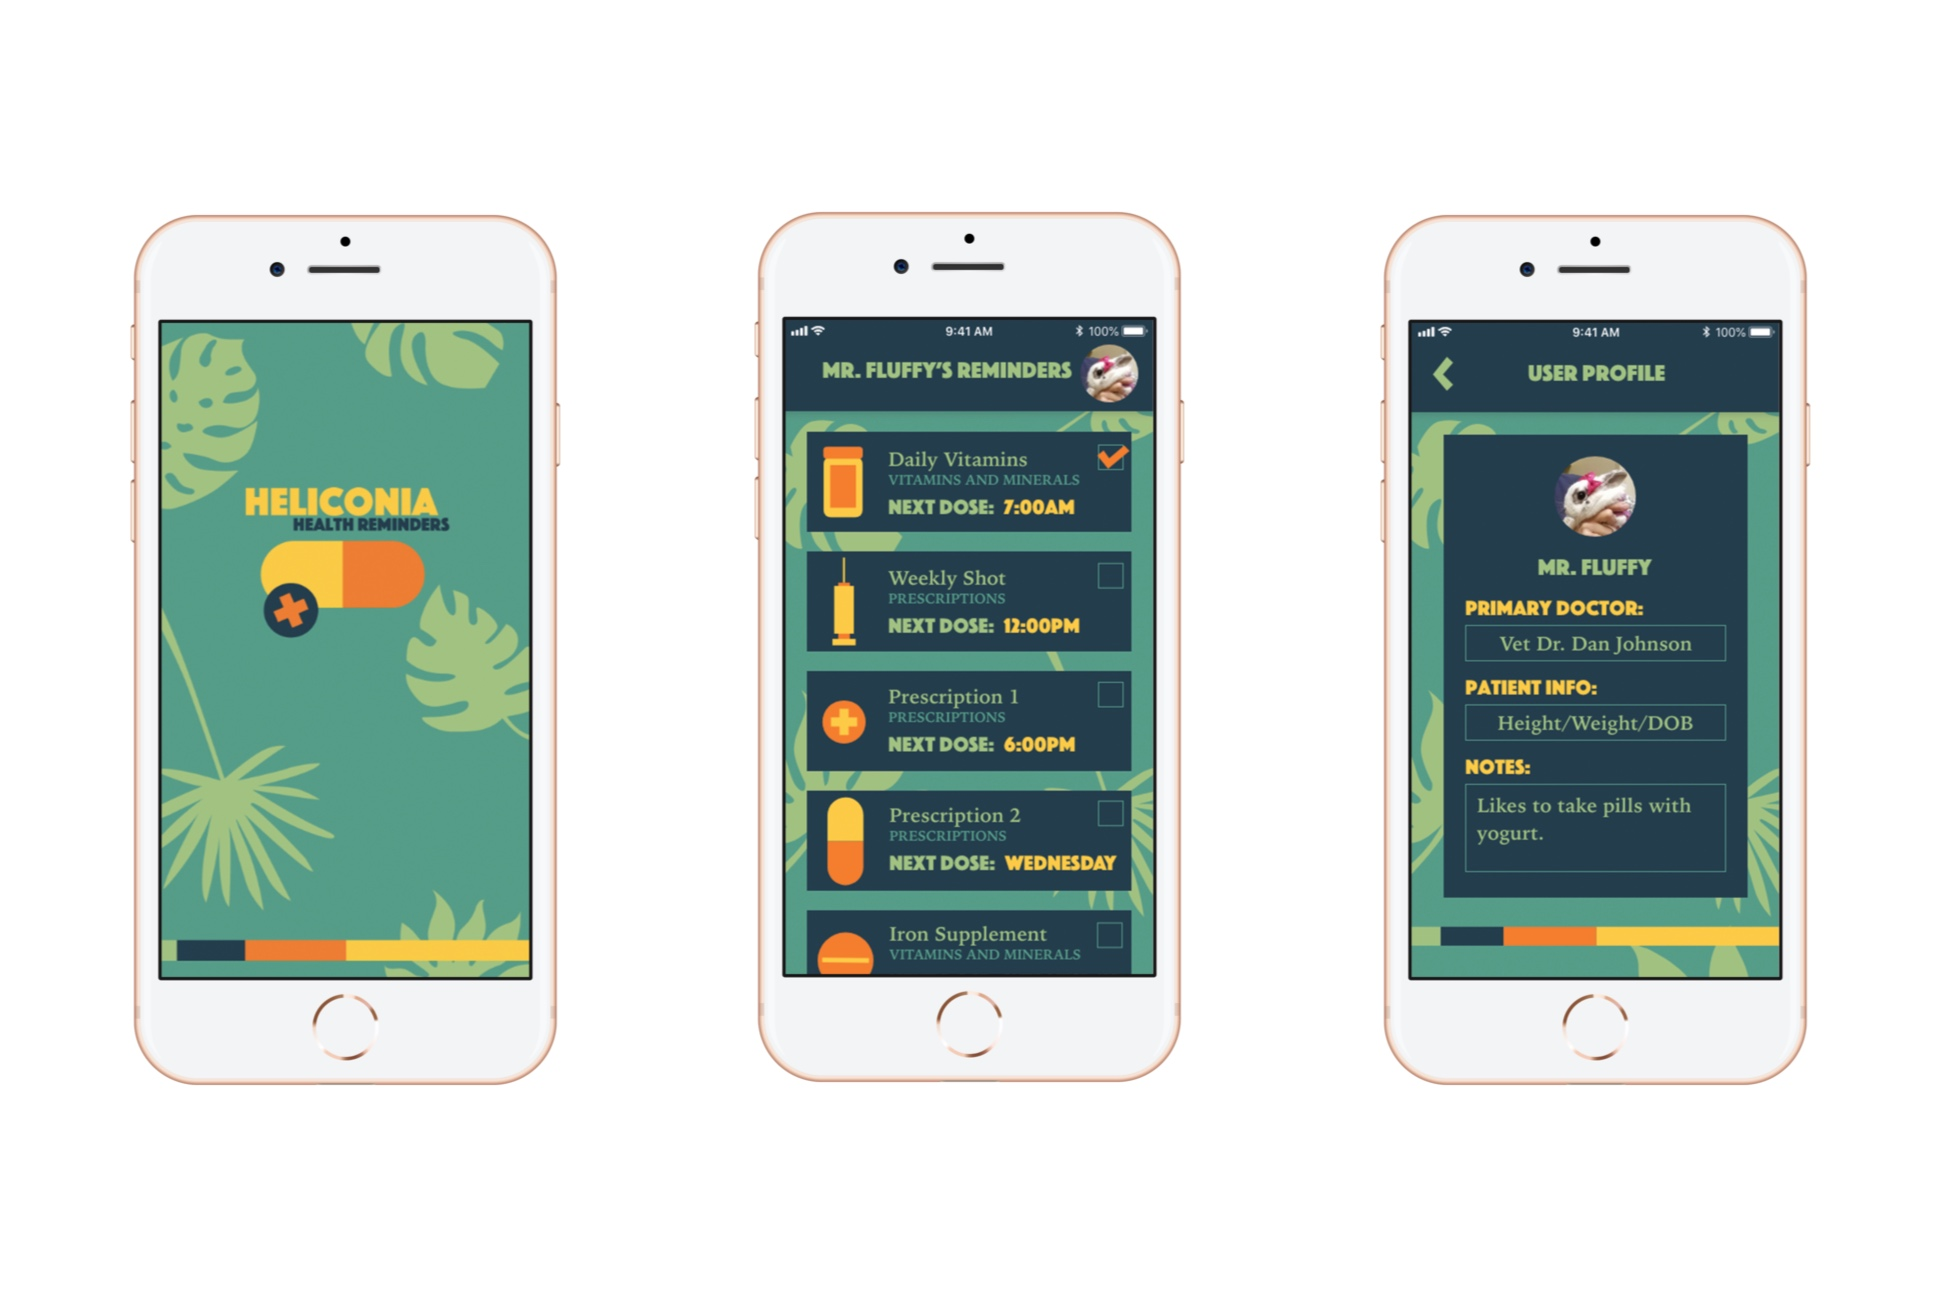 Heliconia: A Health Reminder App